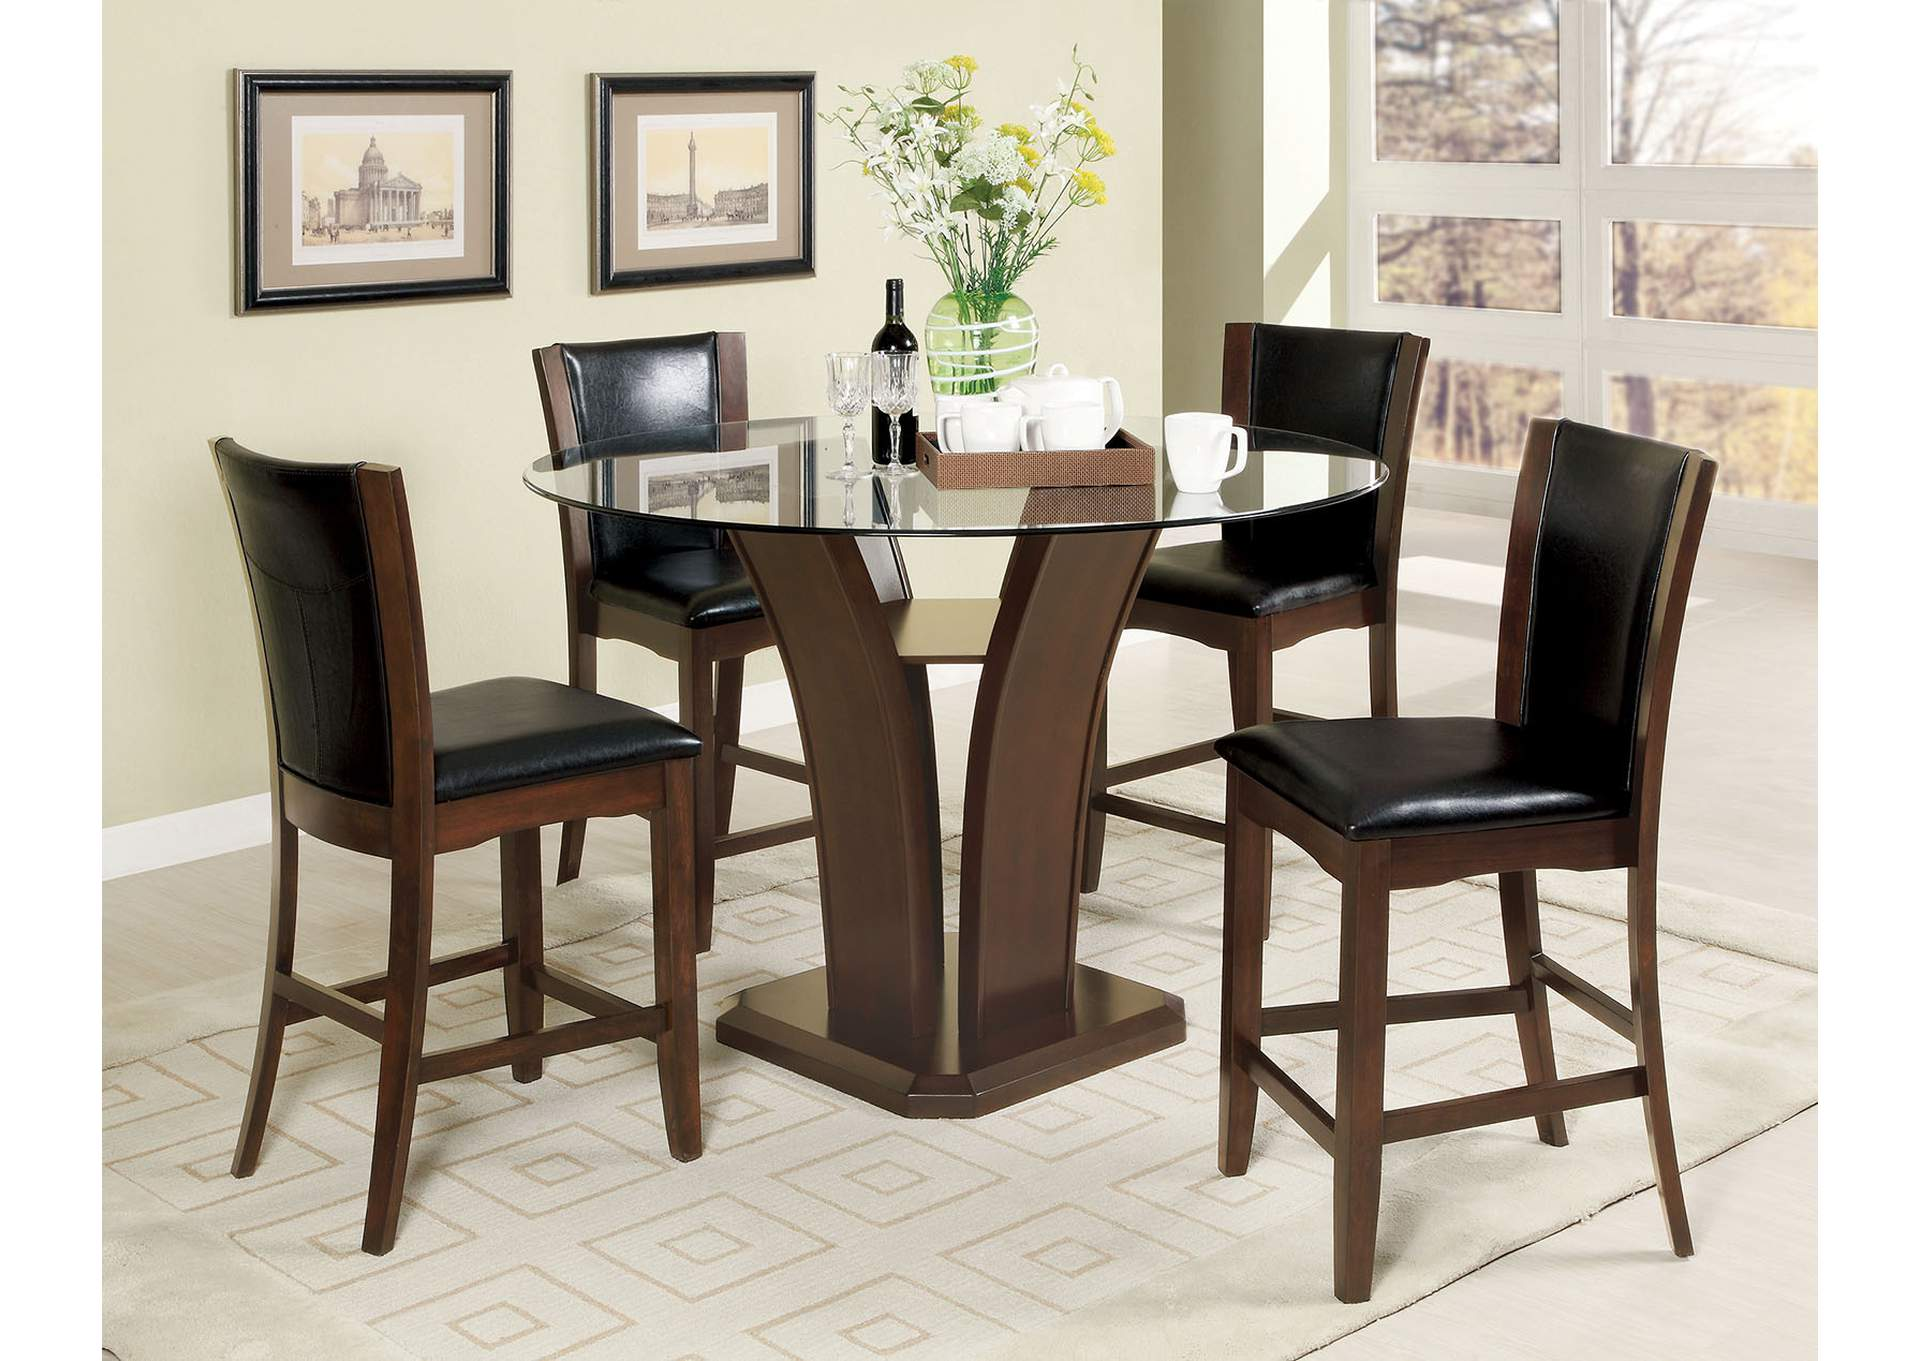 Attrayant Manhattan Lll Round Glass Top Counter Height Table W/2 Counter Height  Chairs,Furniture